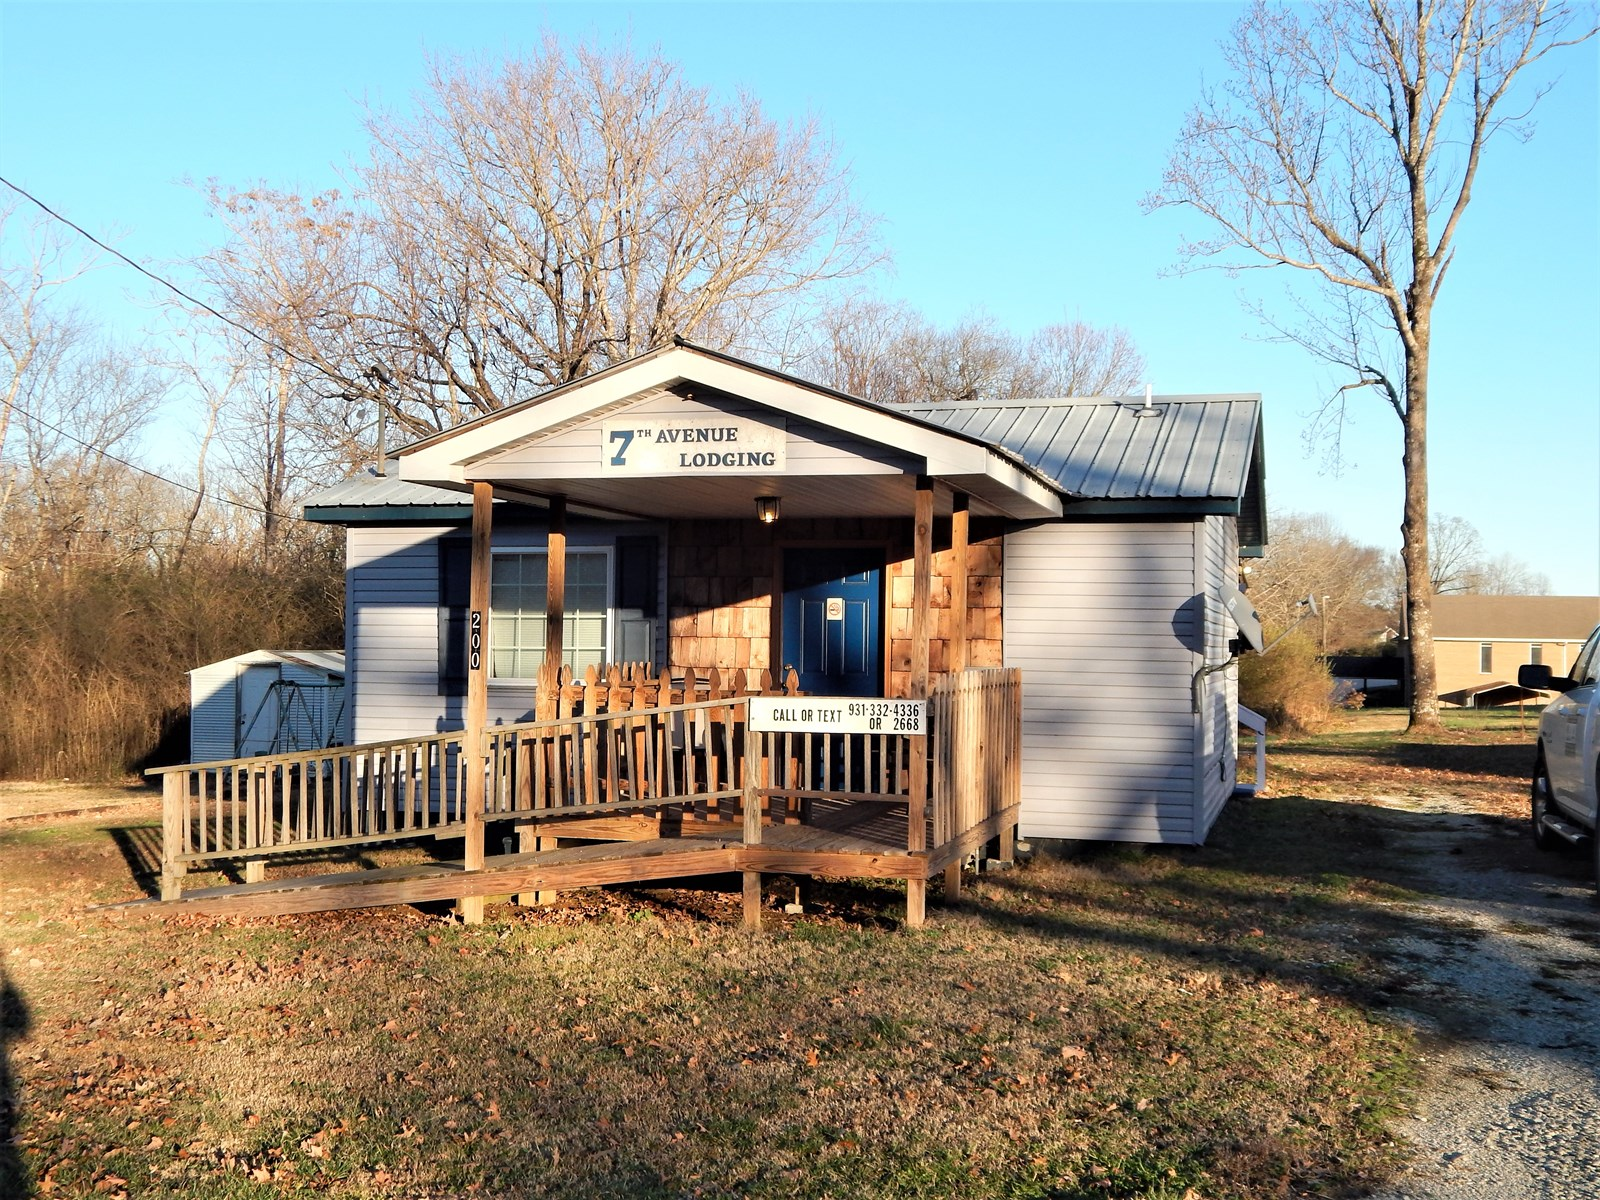 OVERNIGHT RENTAL, INCOME PROPERTY 2 BED-2 BATH